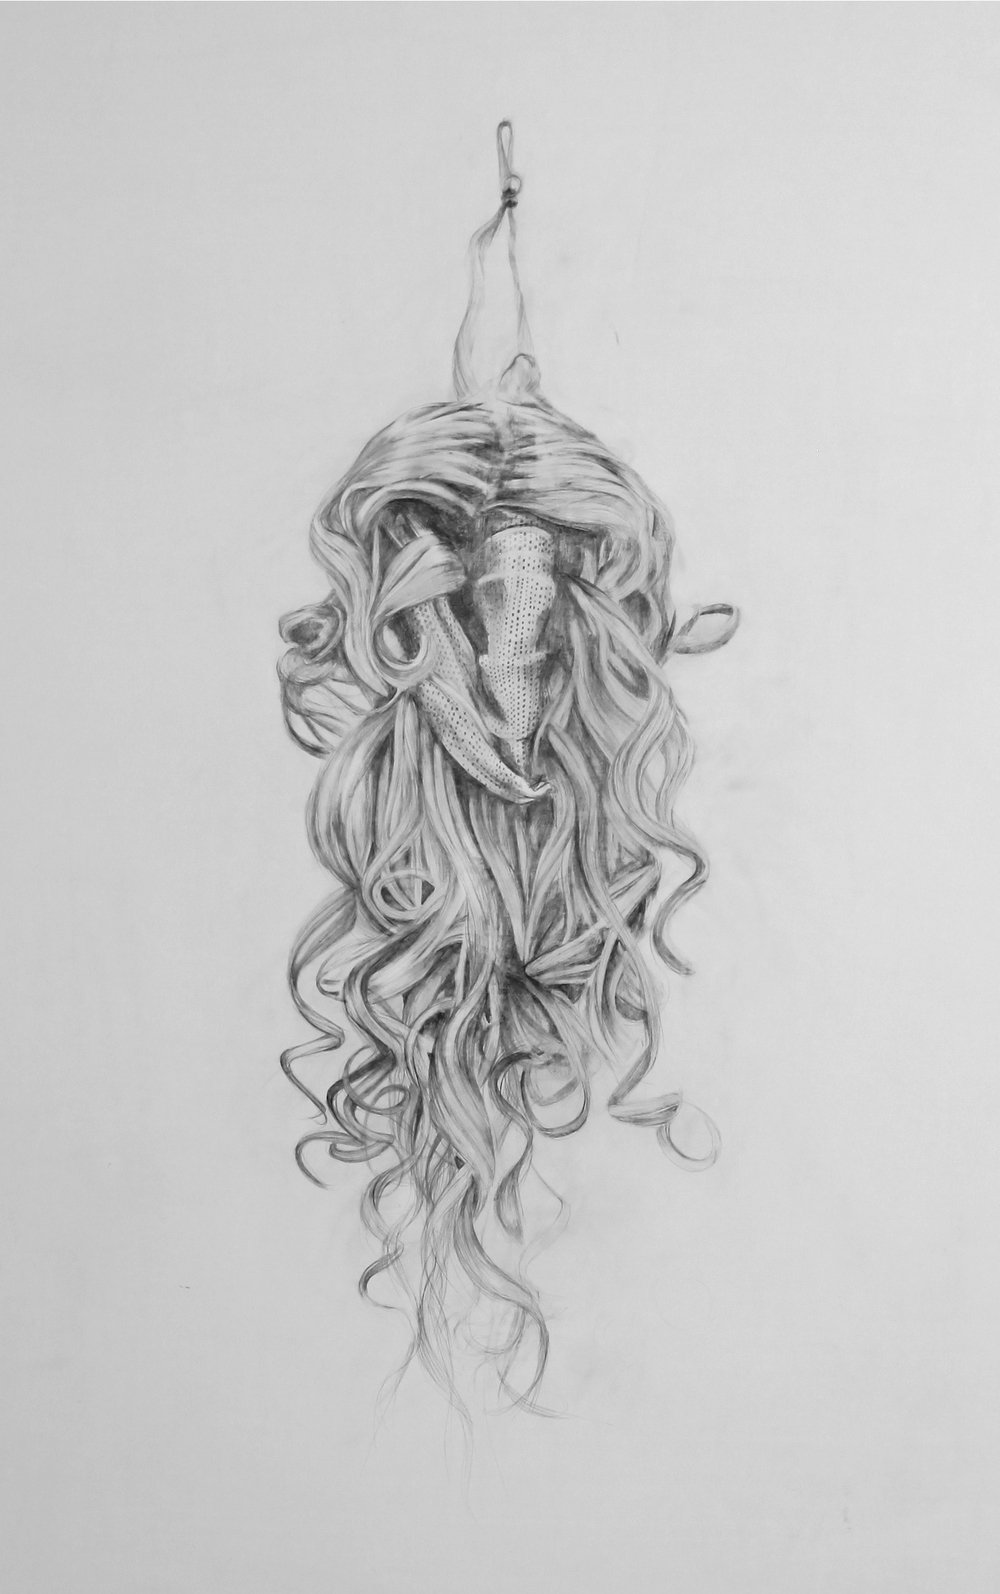 Detail of 'Hanging Wig'